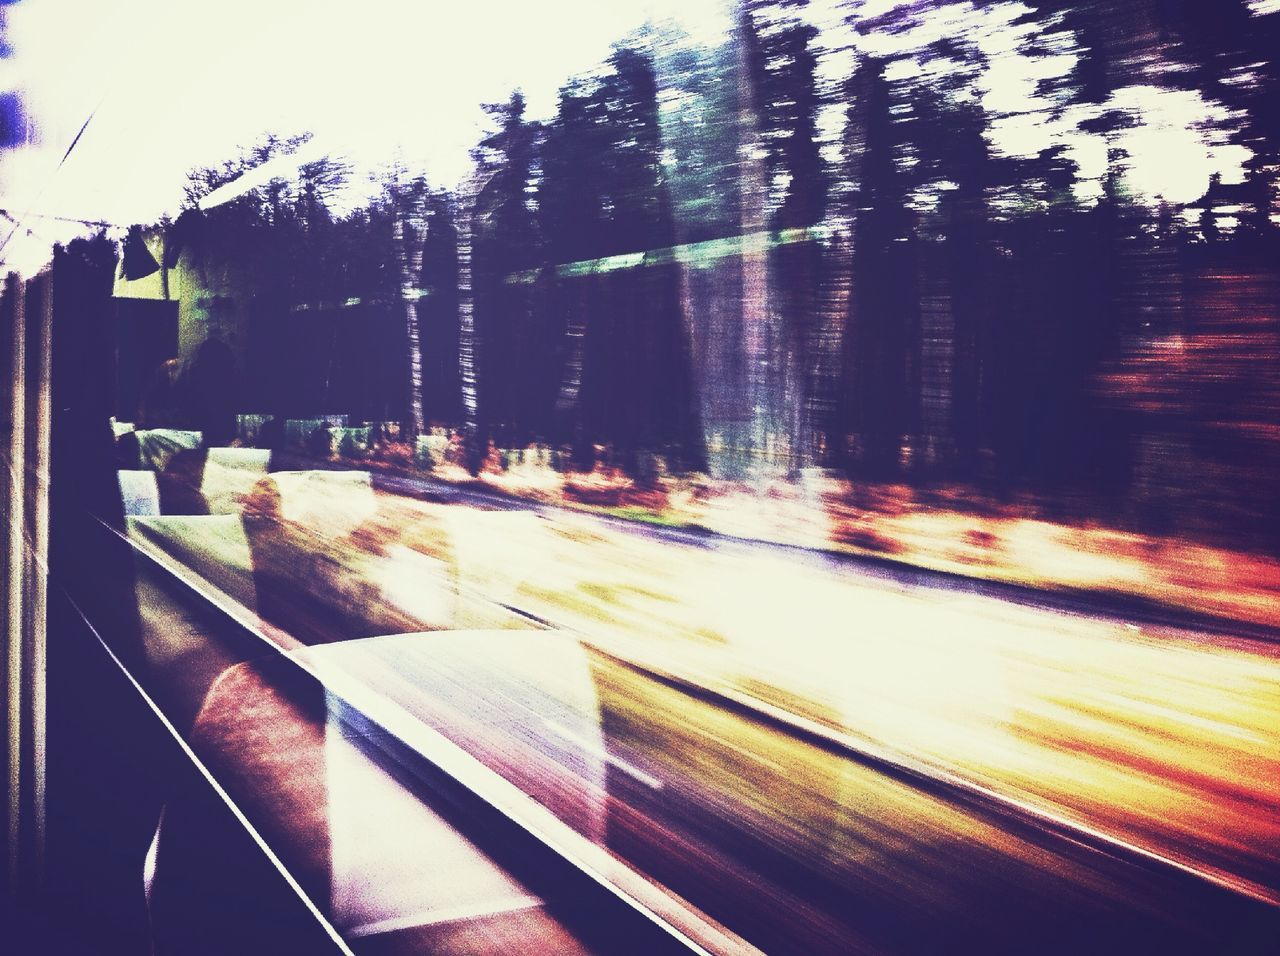 Blurred motion of trees and railroad tracks seen through train window